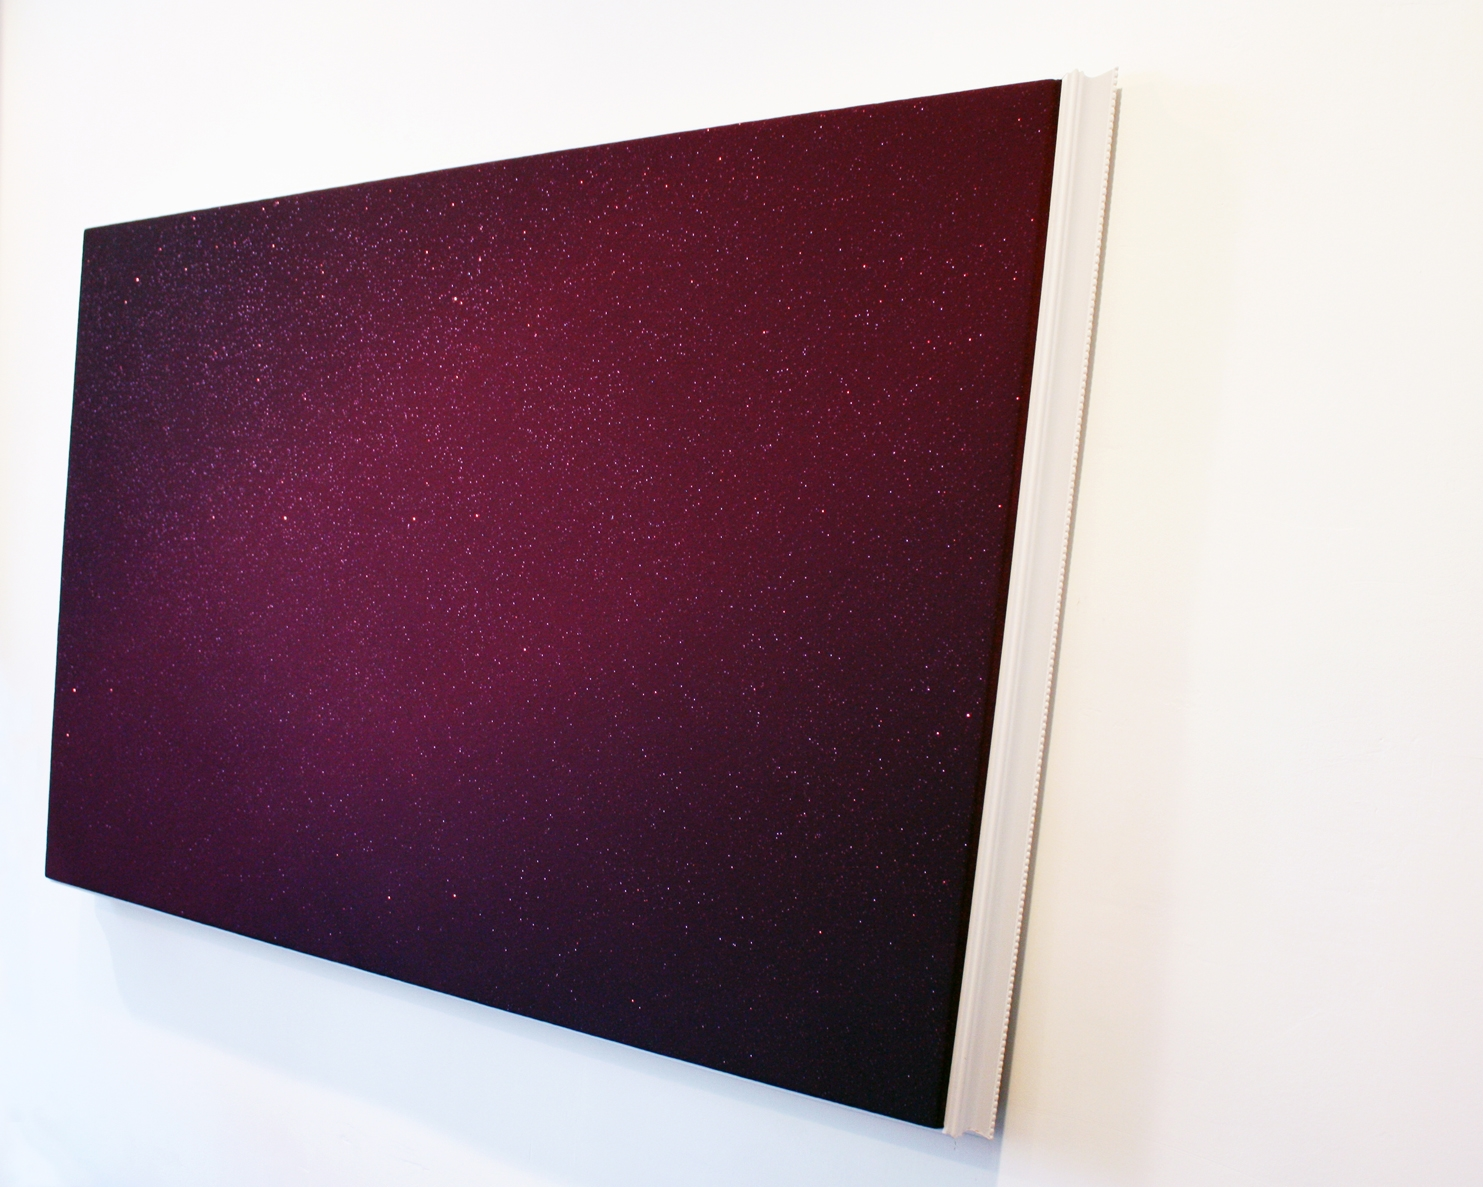 Deep Purple (alternate view), 2011